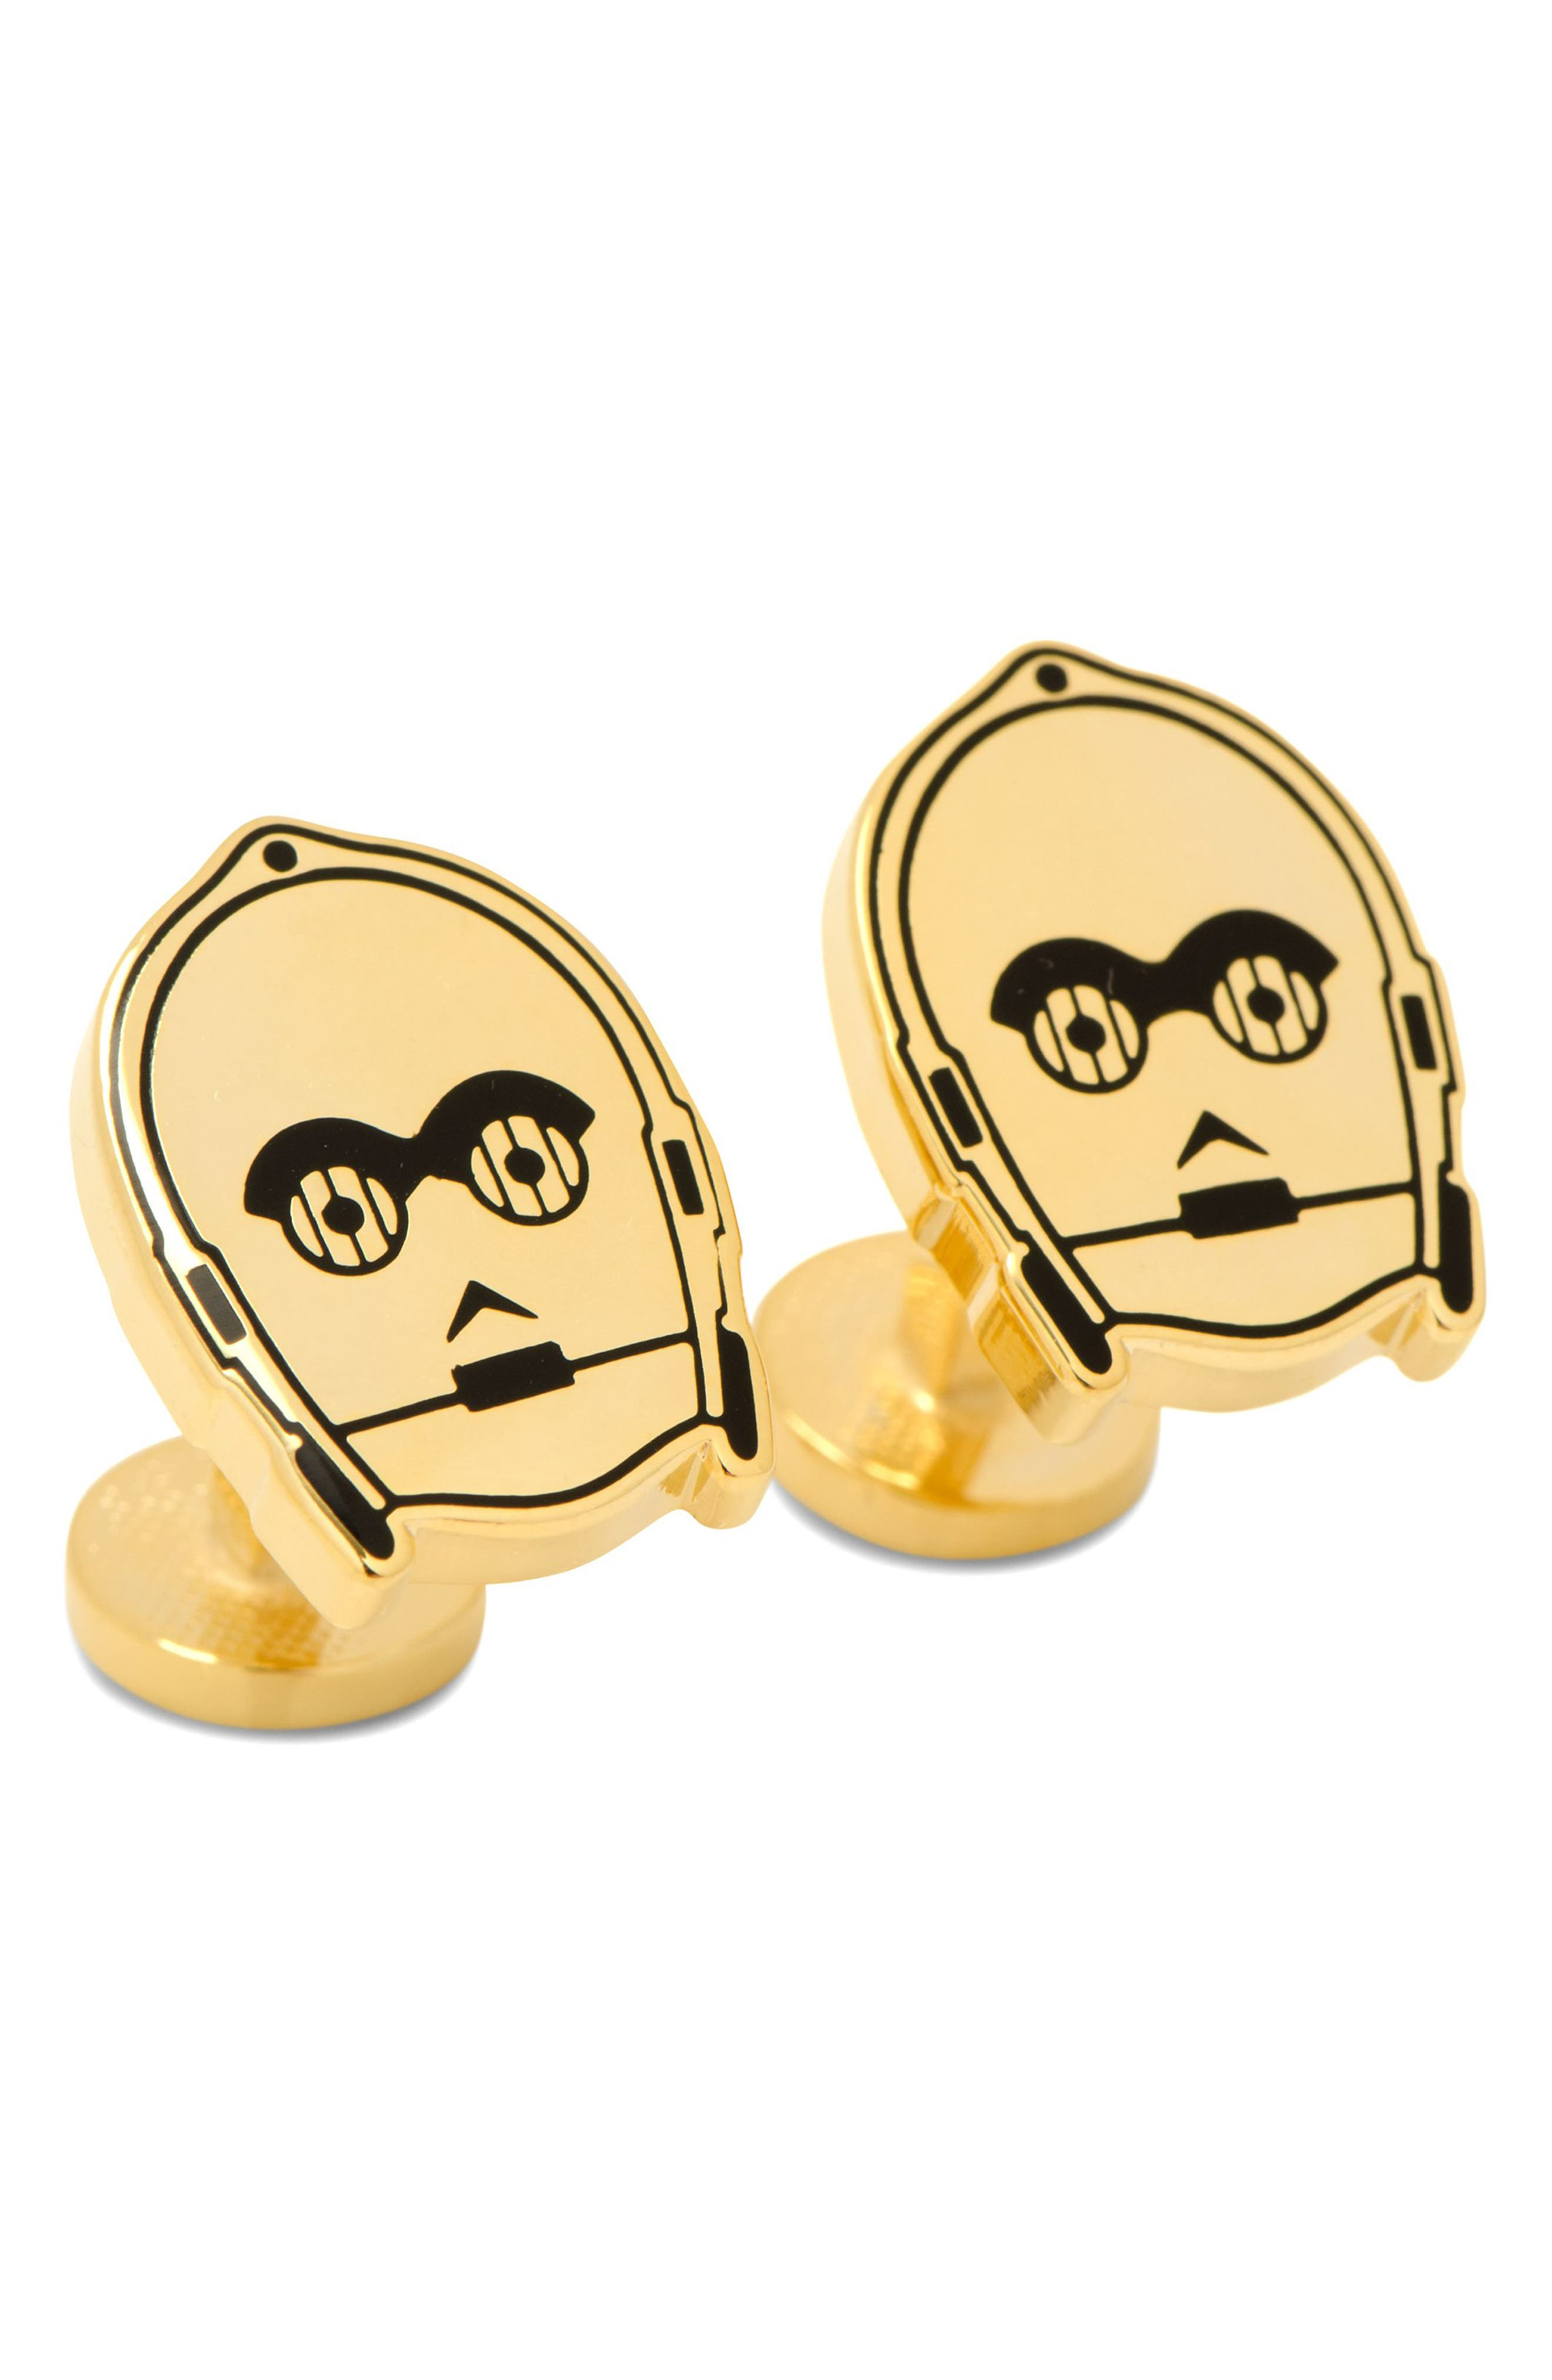 C-3PO Cuff Links,                         Main,                         color, Gold